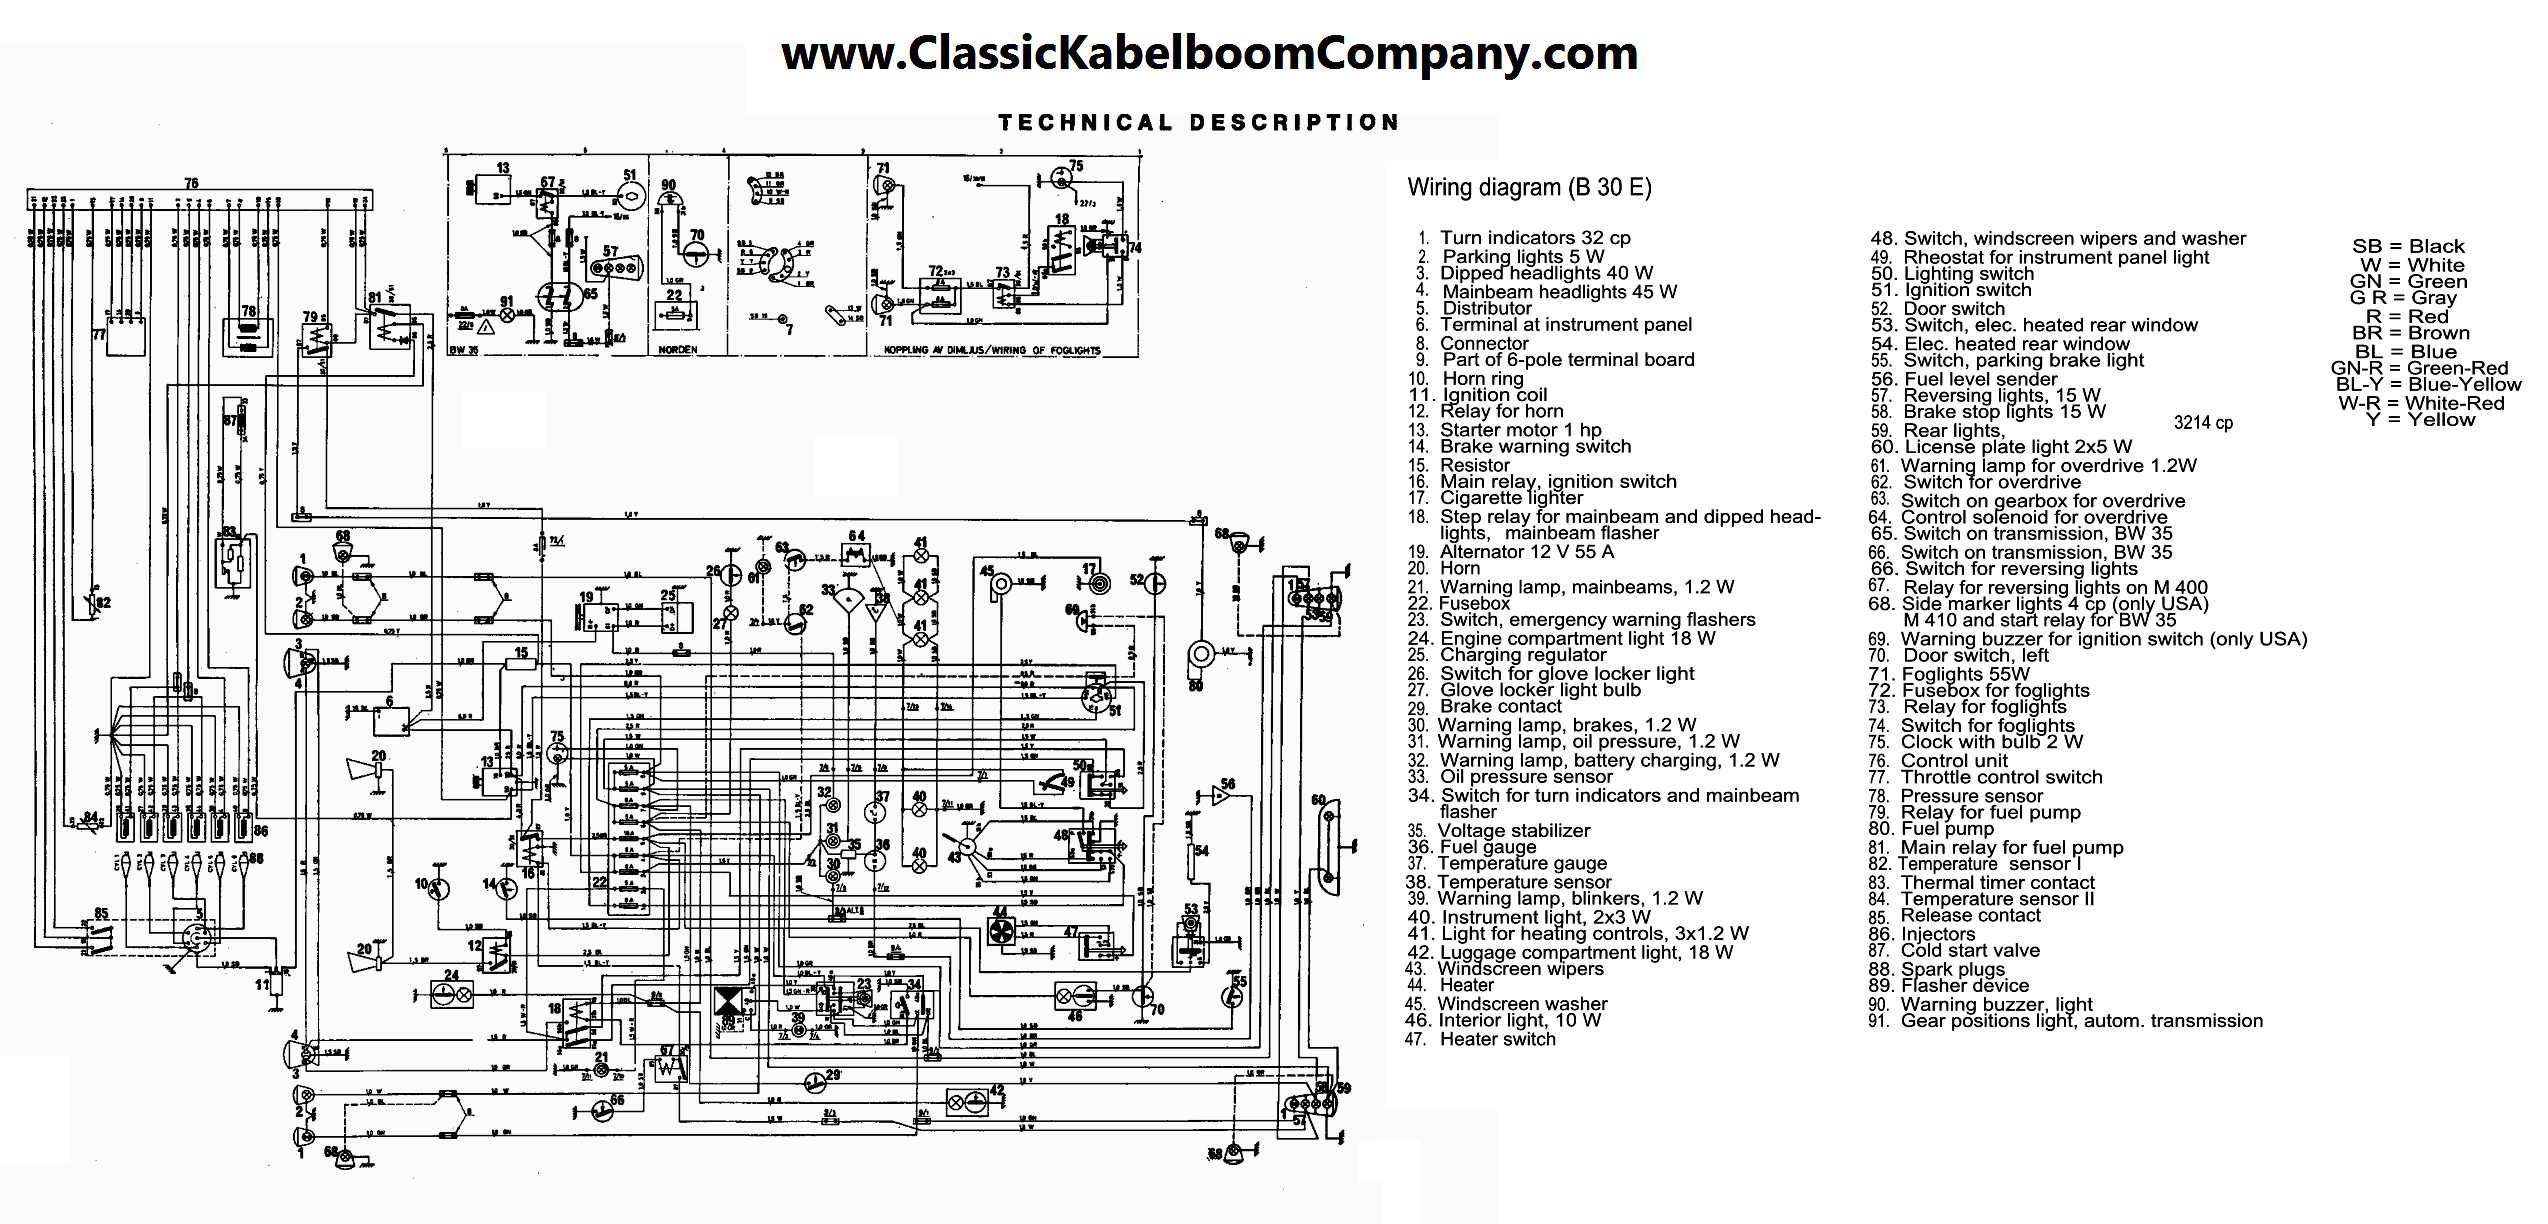 Classic Kabelboom Company Elektrisch Bedrading Schema Volvo Aim Manual Page 57 Single Phase Motors And Controls Motor 162 164 165 1975 Electrical Wiring Diagram